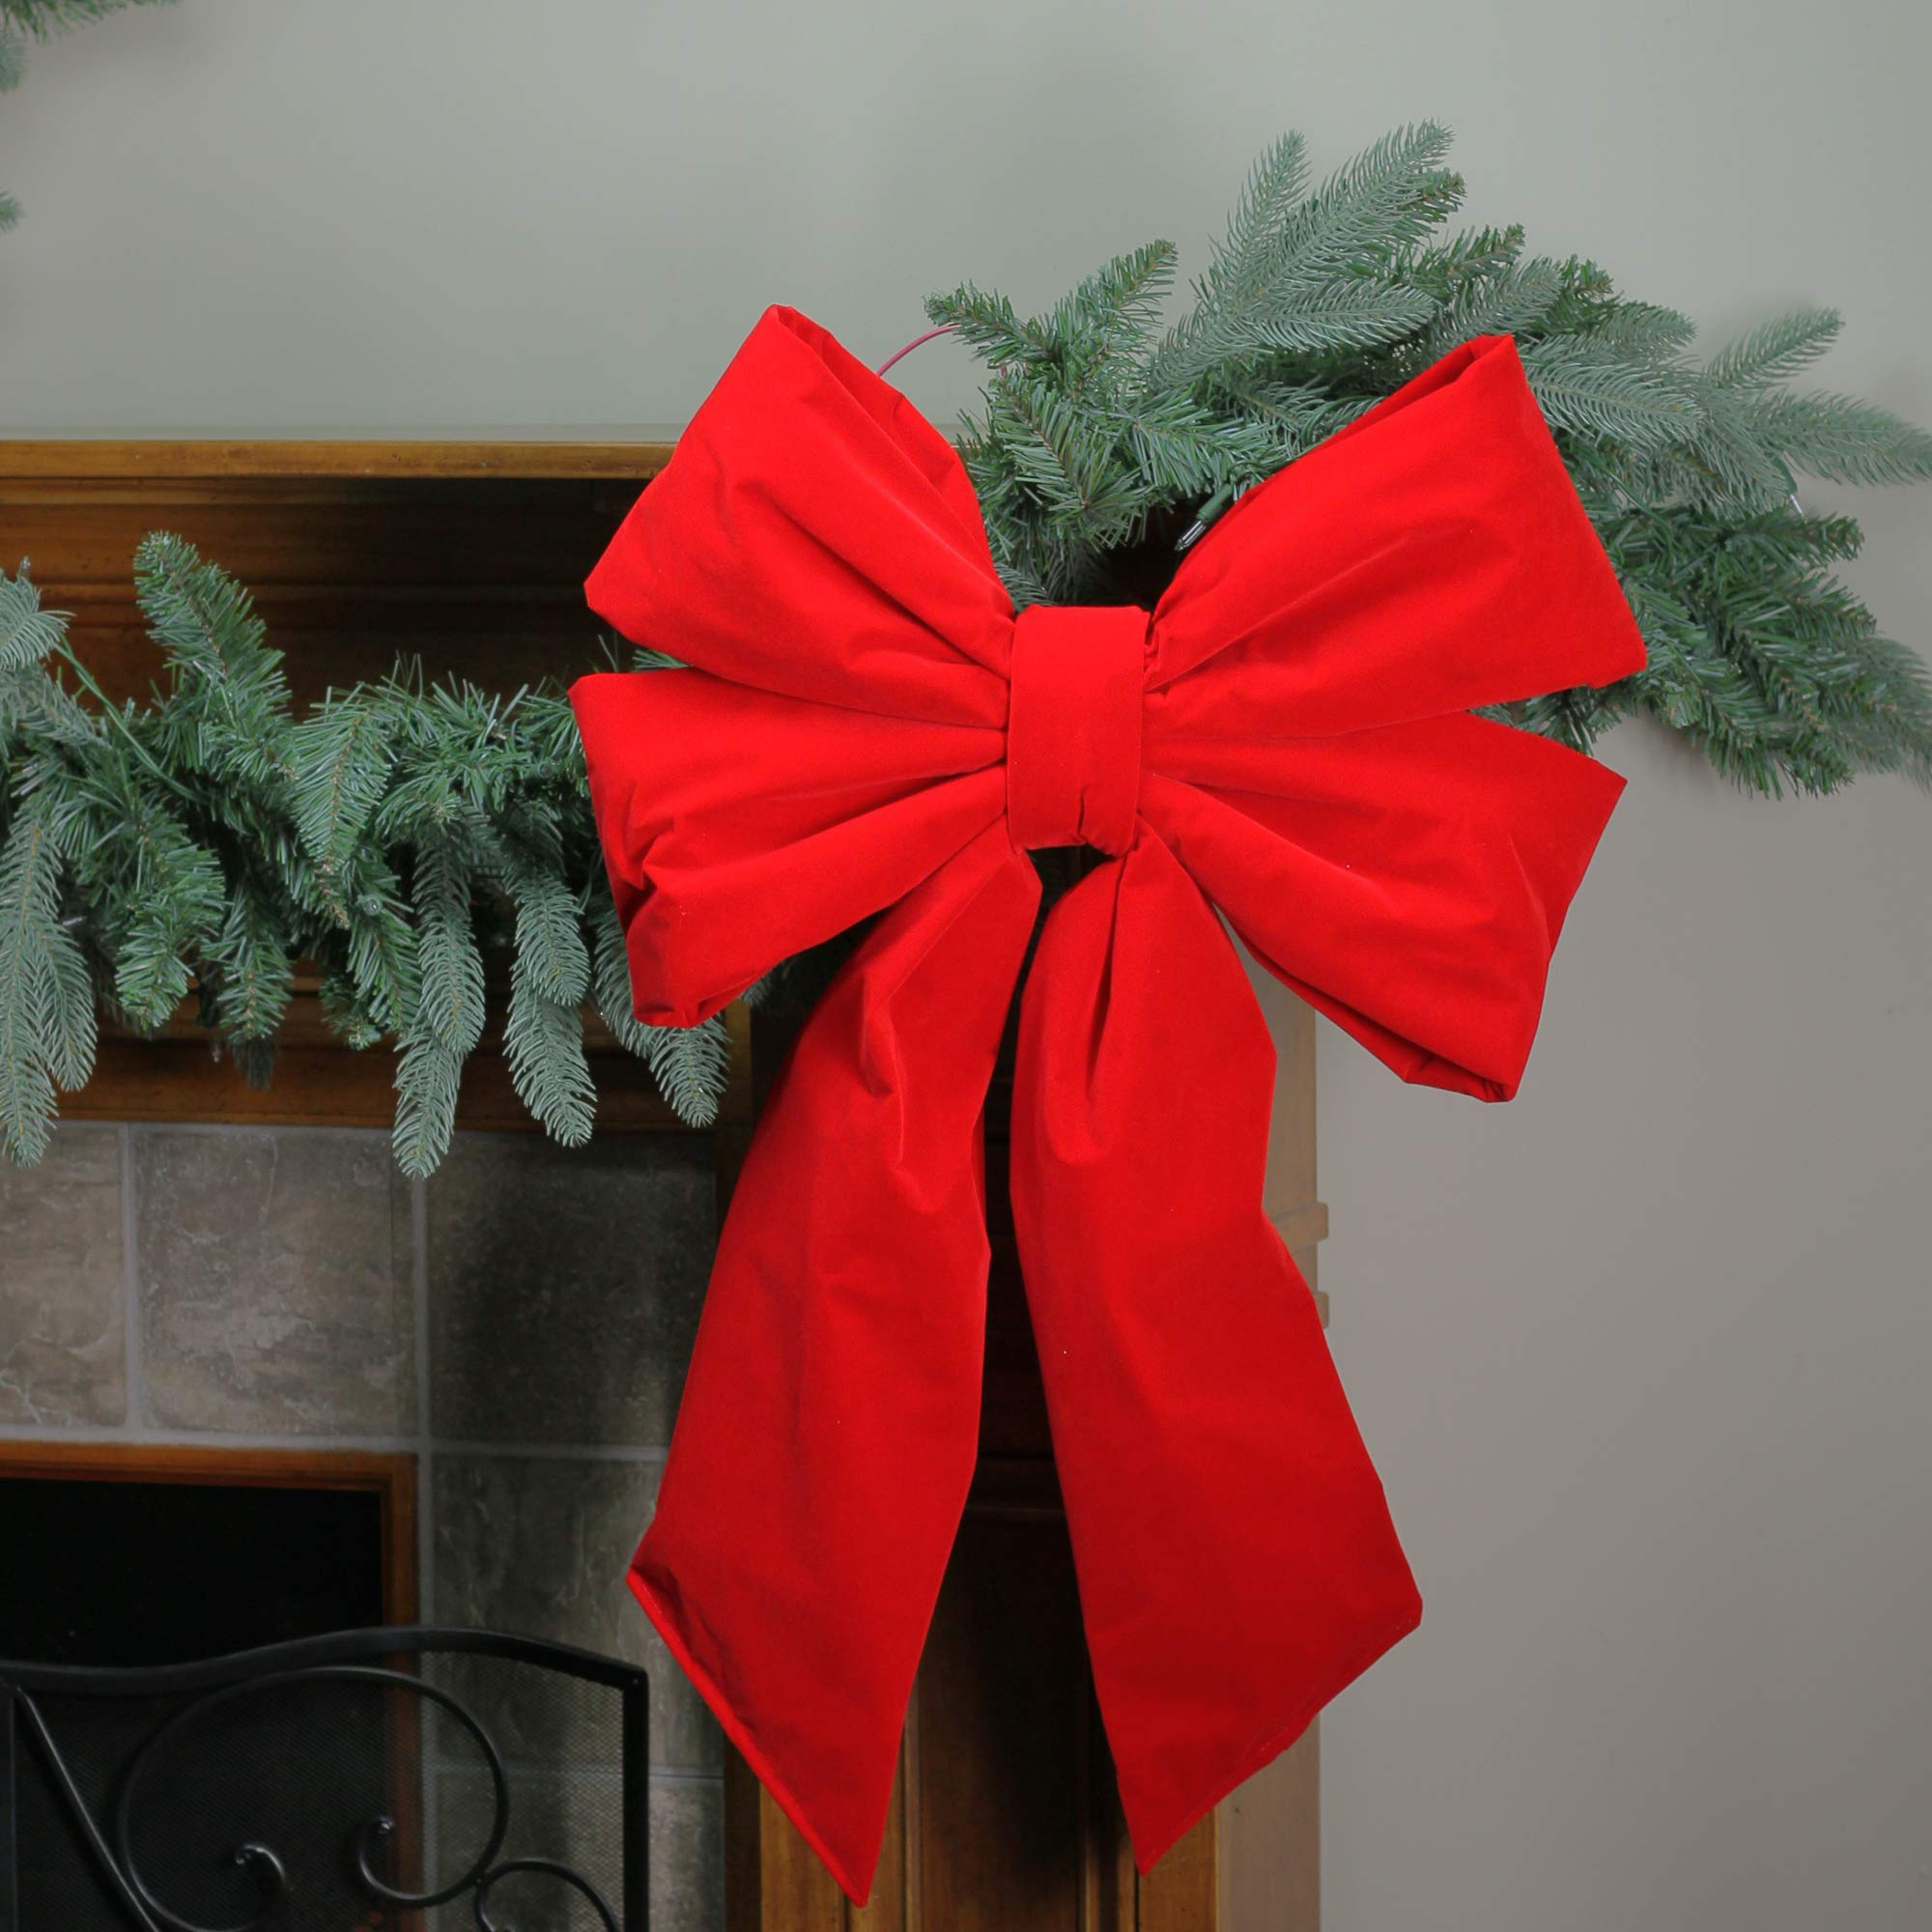 Northlight 18'' x 26'' Commercial Structural 4-Loop Red Outdoor Christmas Bow Decoration